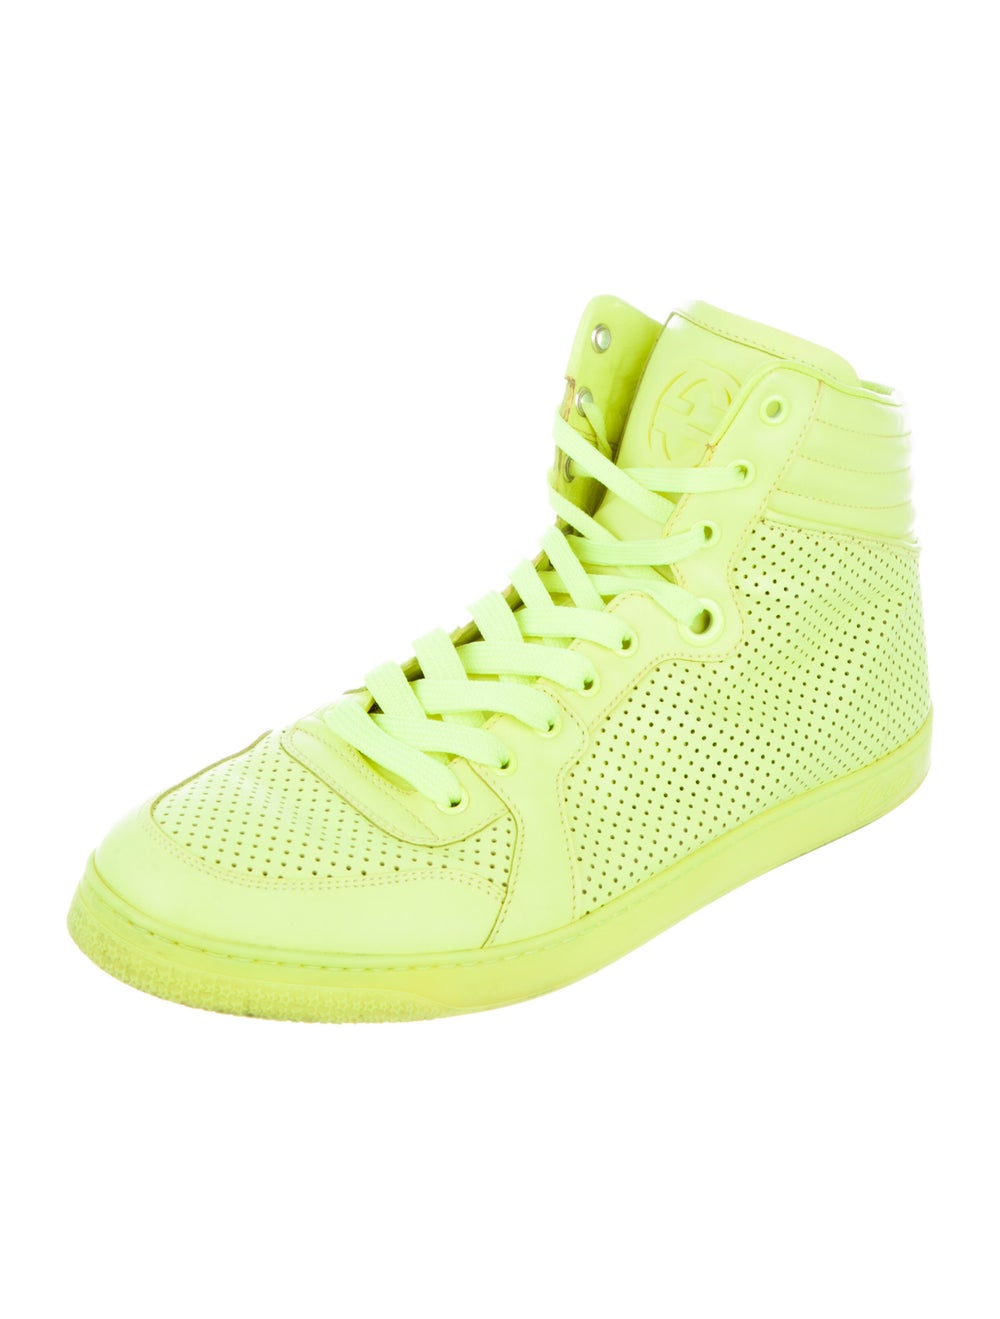 Gucci Leather Sneakers Green - image 2